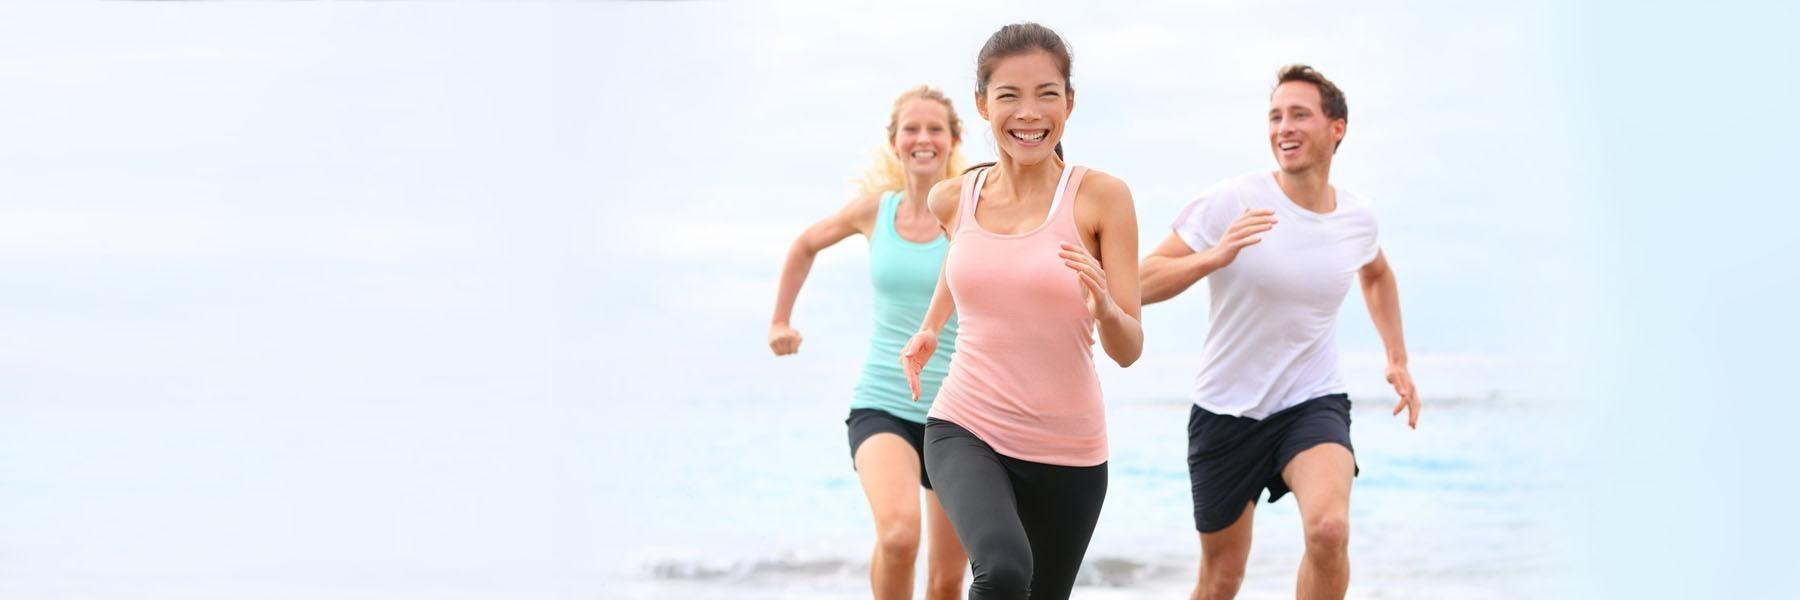 man and two women running on beach | monroe township nj mouthguards